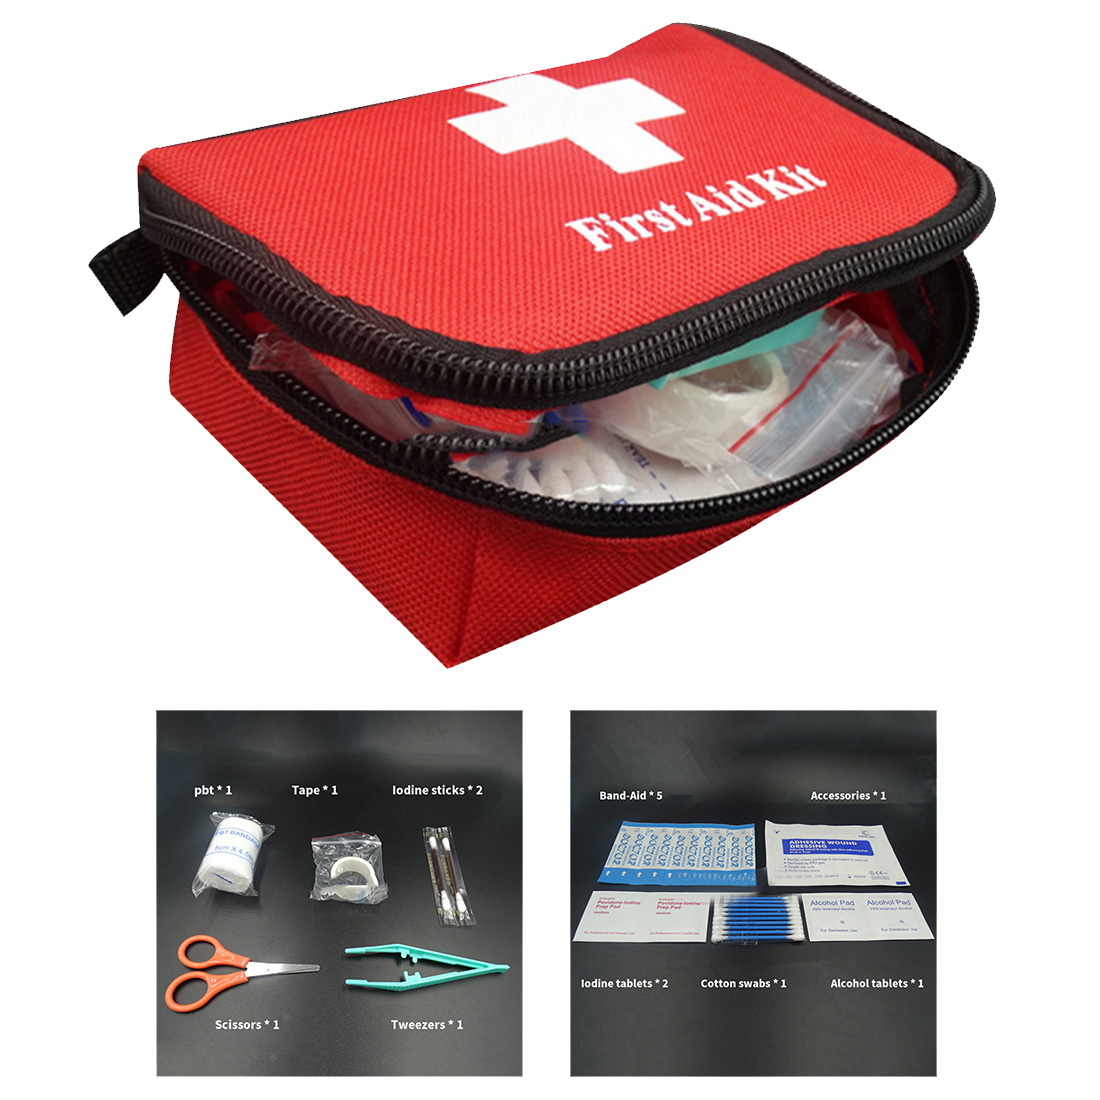 13/11/8 Items Portable Emergency Survival Kit Mini Family First Aid Treatment Pack Pouch Outdoor Car Sport Travel Medical Bag